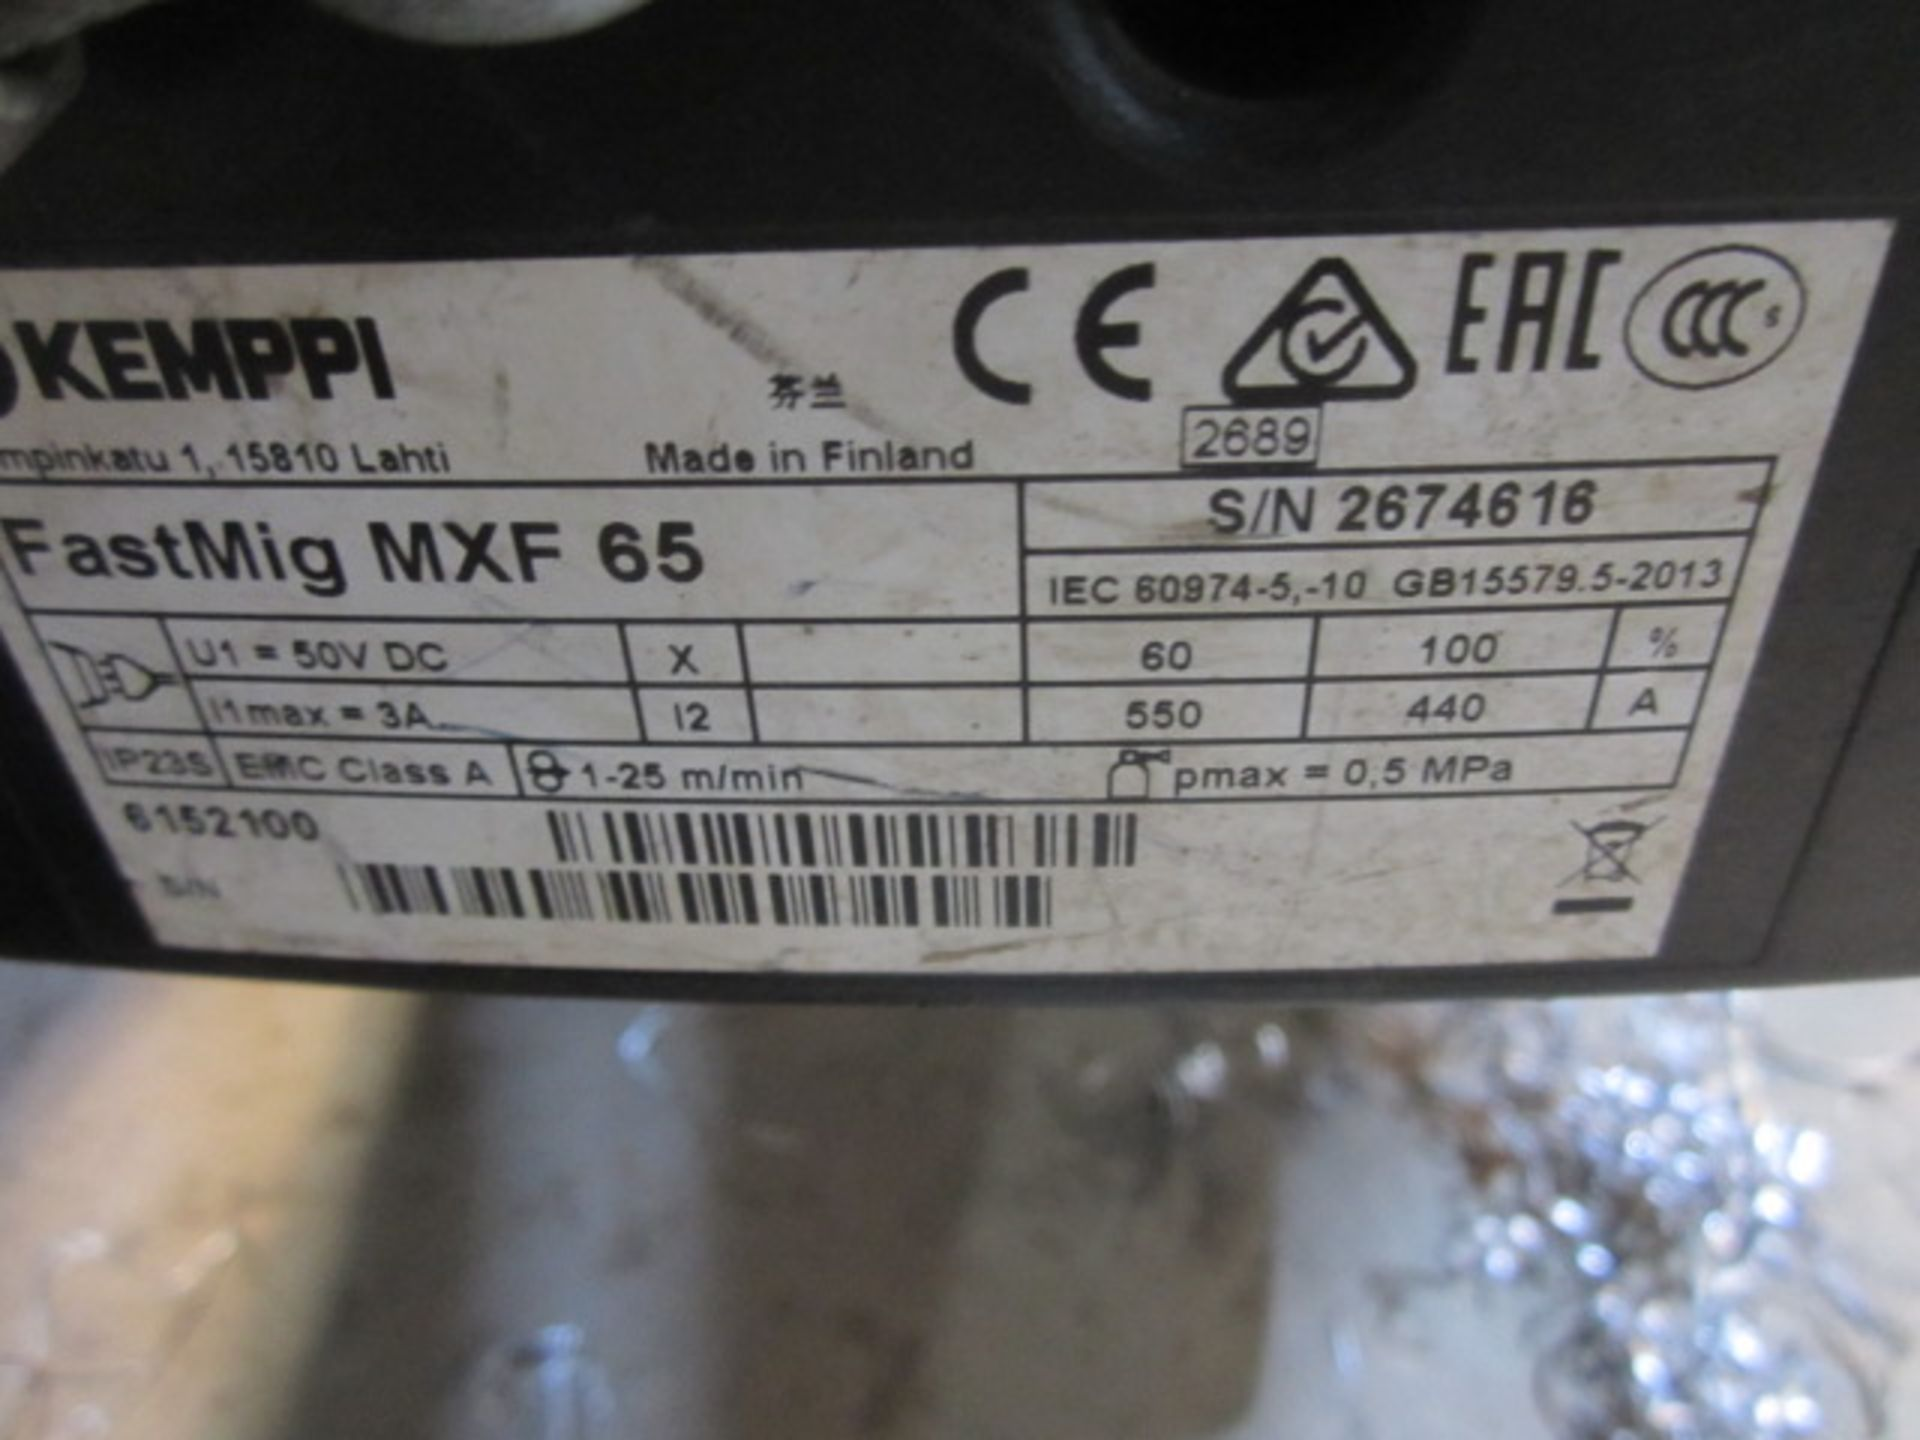 Kemppi Fast Mig M420 mig welder, serial no. 2673739, with Fast Mig MXF65 wire feeder, serial no. - Image 5 of 8